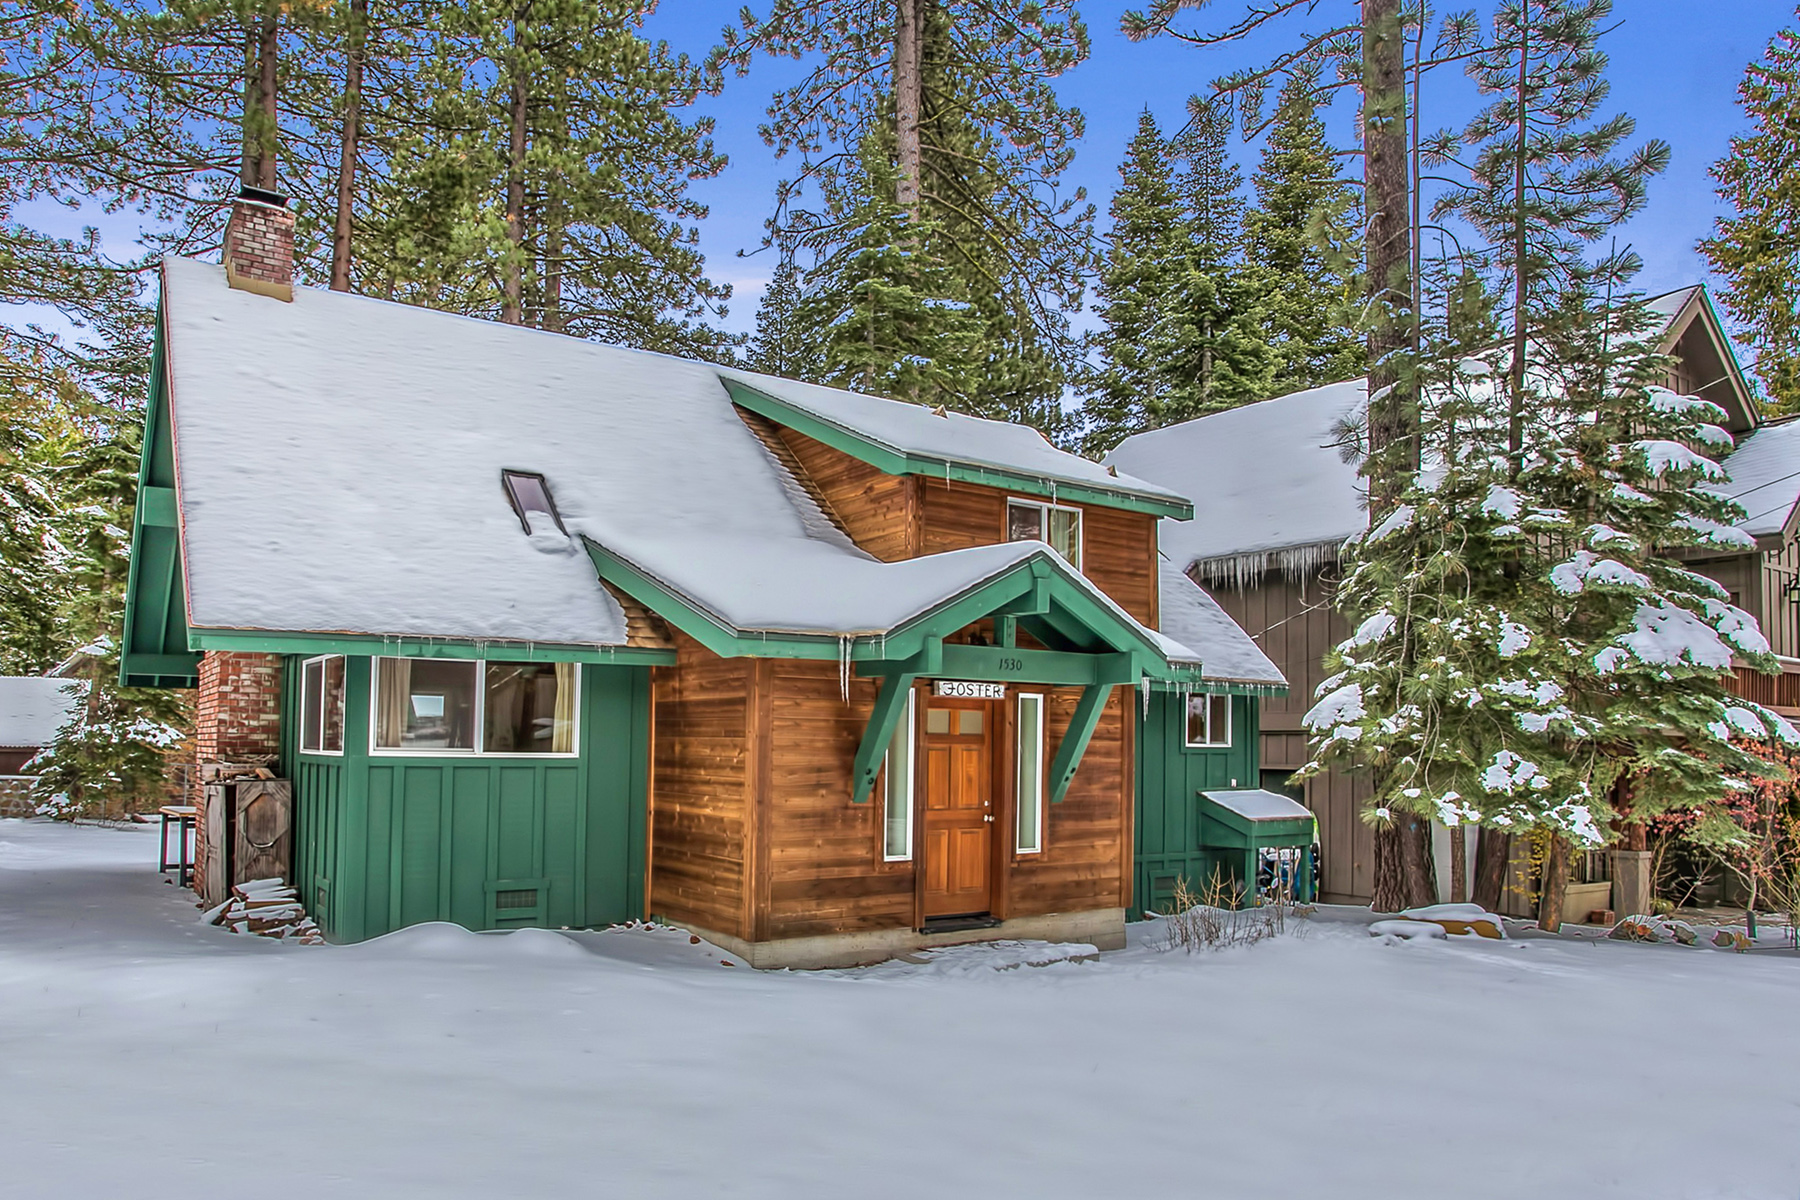 Single Family Home for Active at 1530 Tahoe Park Avenue Tahoe City, California 96145 United States